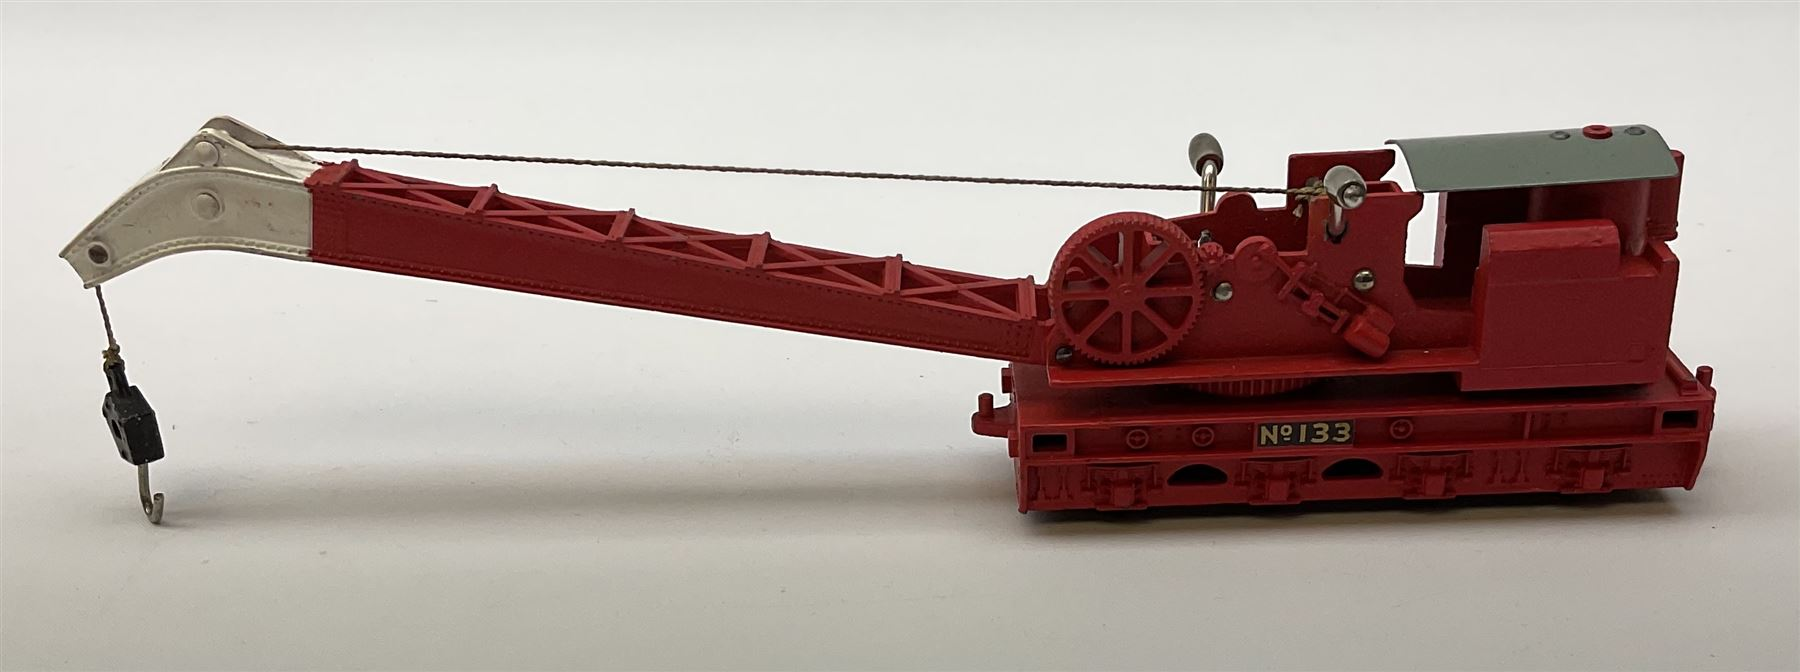 Hornby Dublo - Breakdown Crane No.4062 with screw jacks in plain red box with end label; D1 Girder B - Image 5 of 11